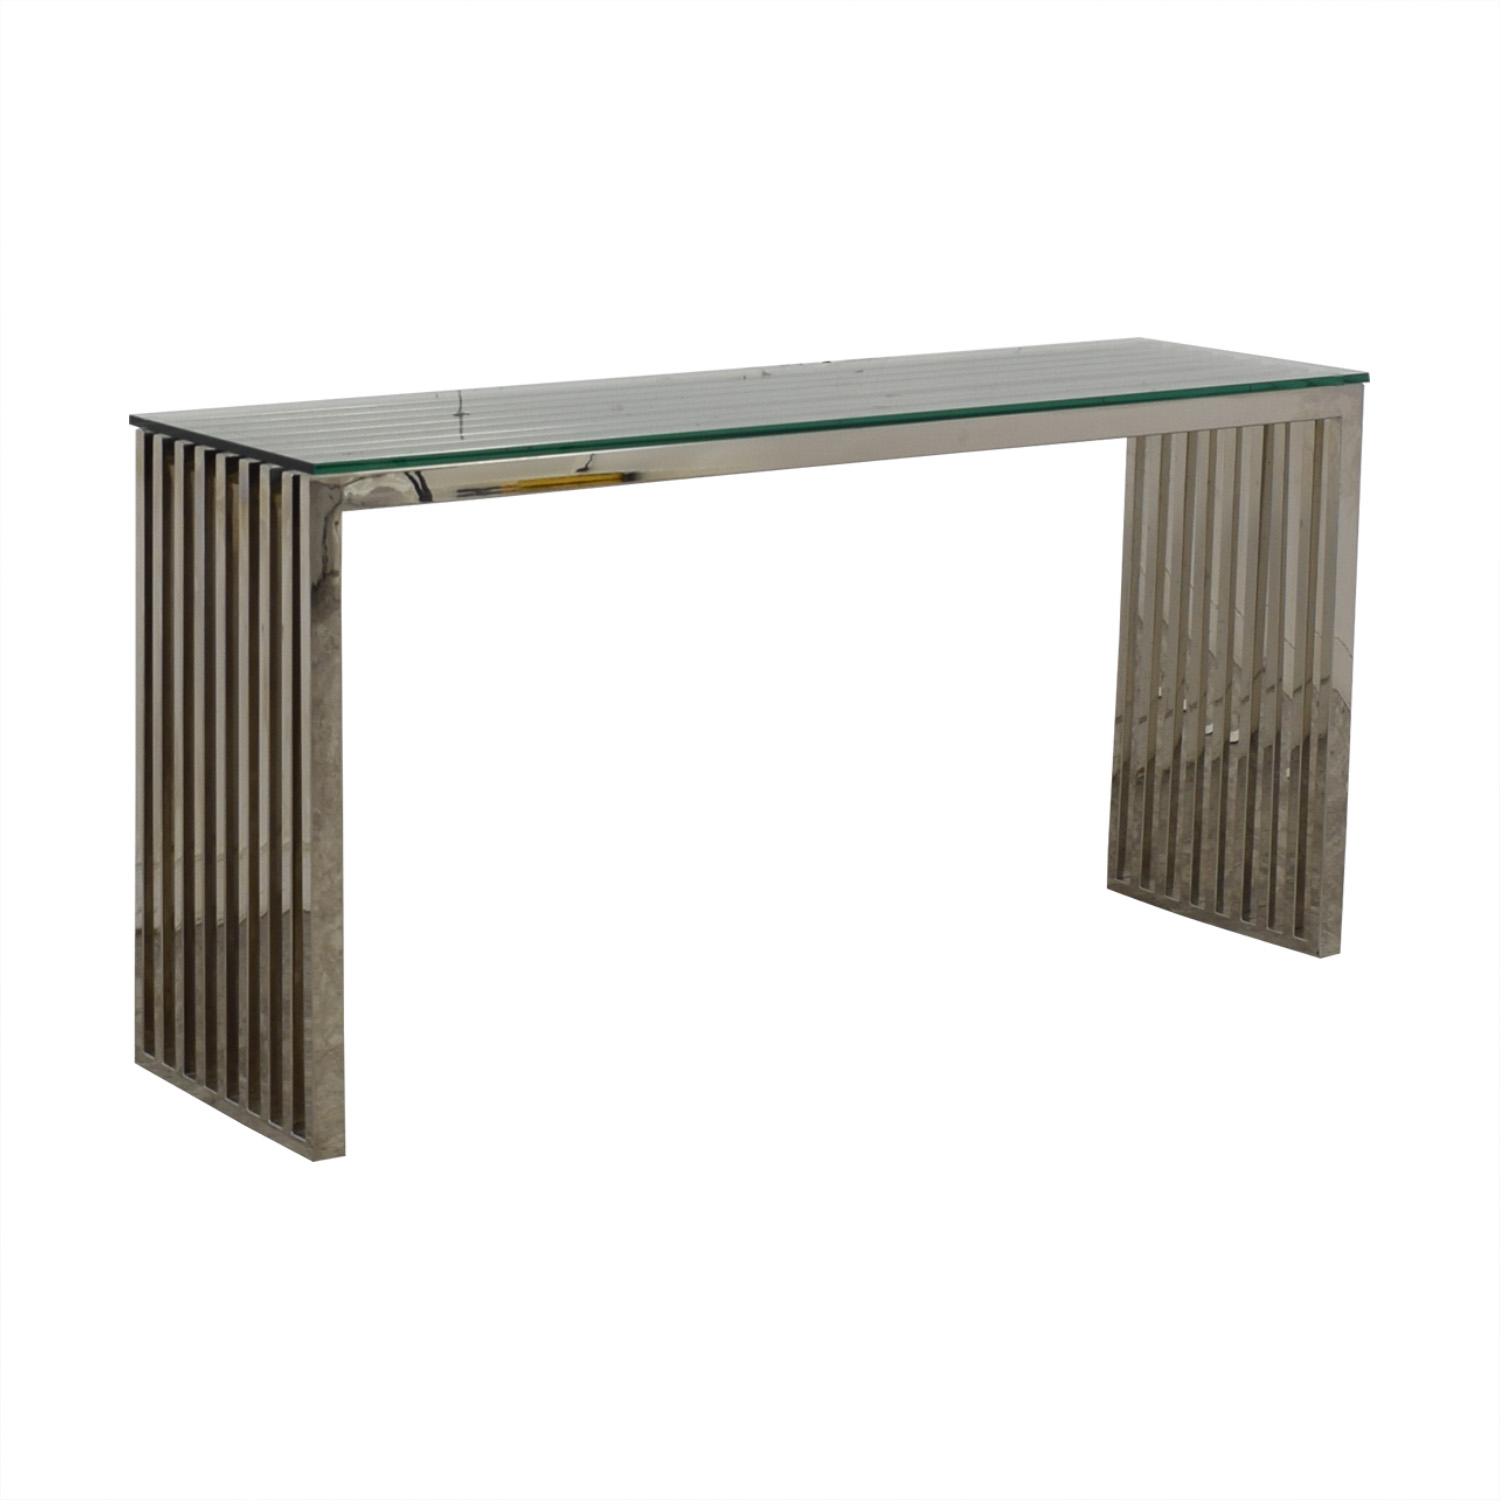 Tui Lifestyle Stainless Steel Console / Accent Tables